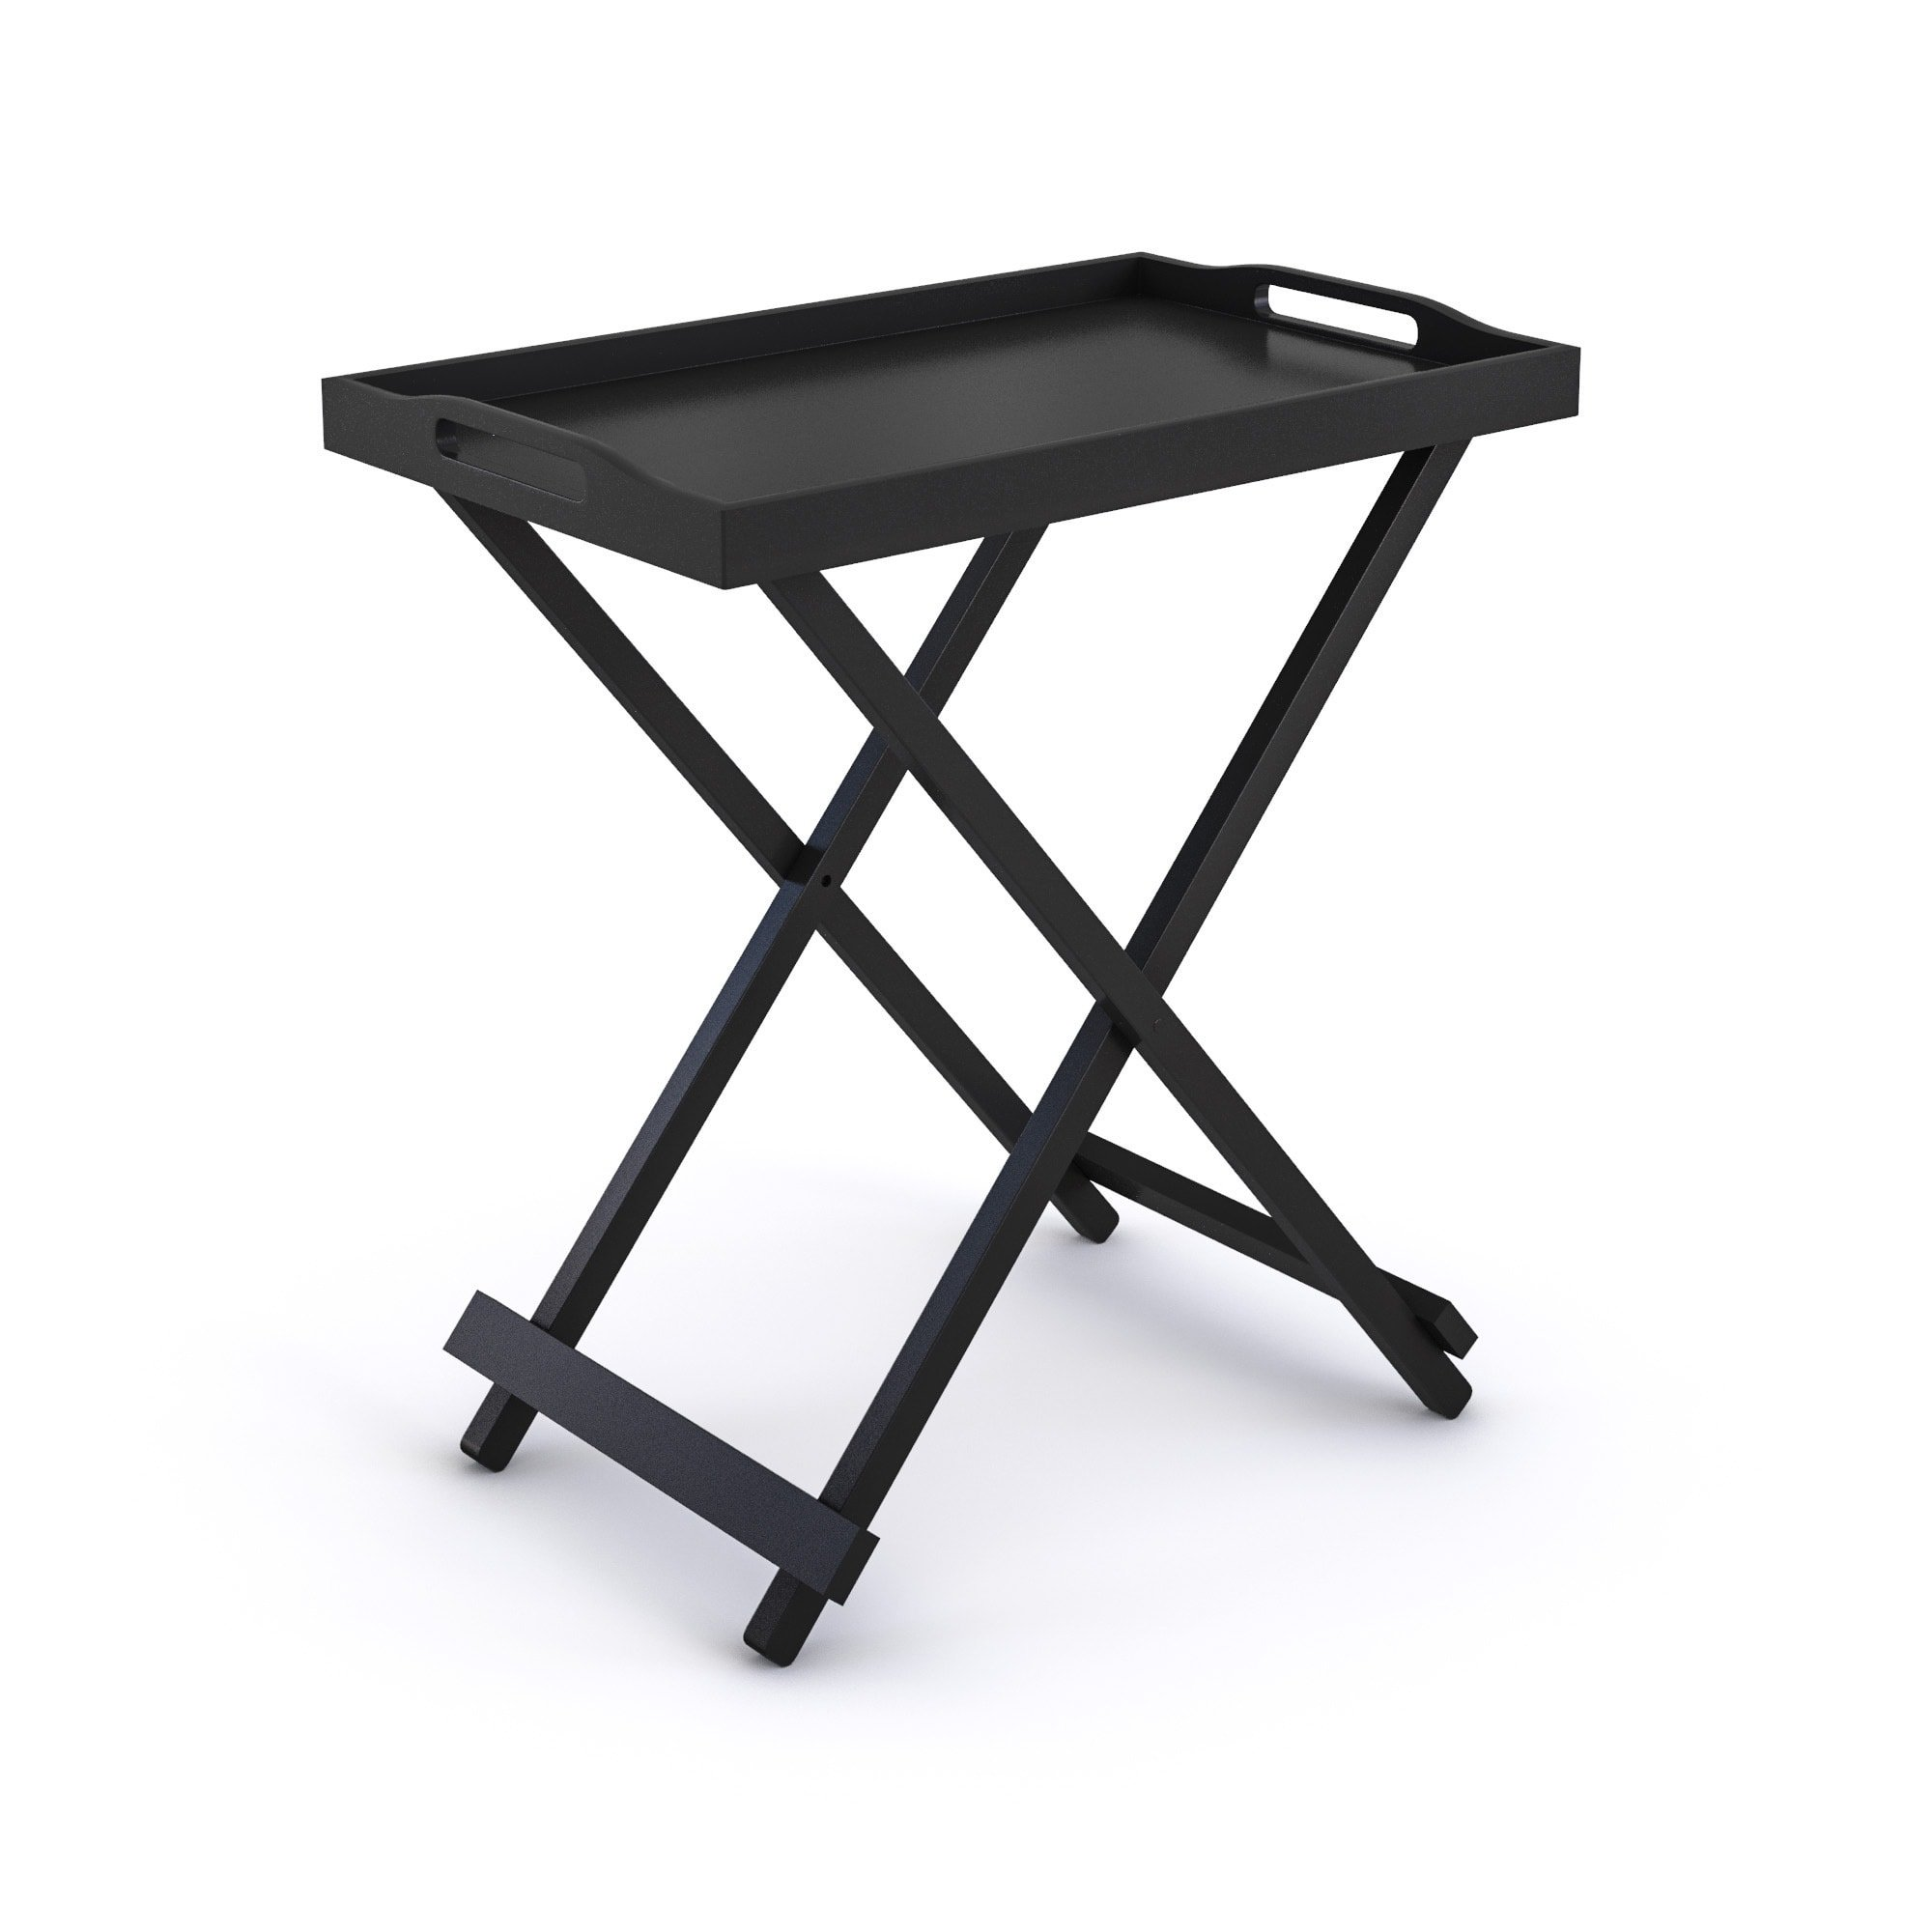 Tv Tray Tables with Removable Serving Tray Portable Table Top Folding Lightweight End Table Snack Table for Living Room Wood Furniture Includes Bonus Ebook Home Decorating on a Budget (Black)